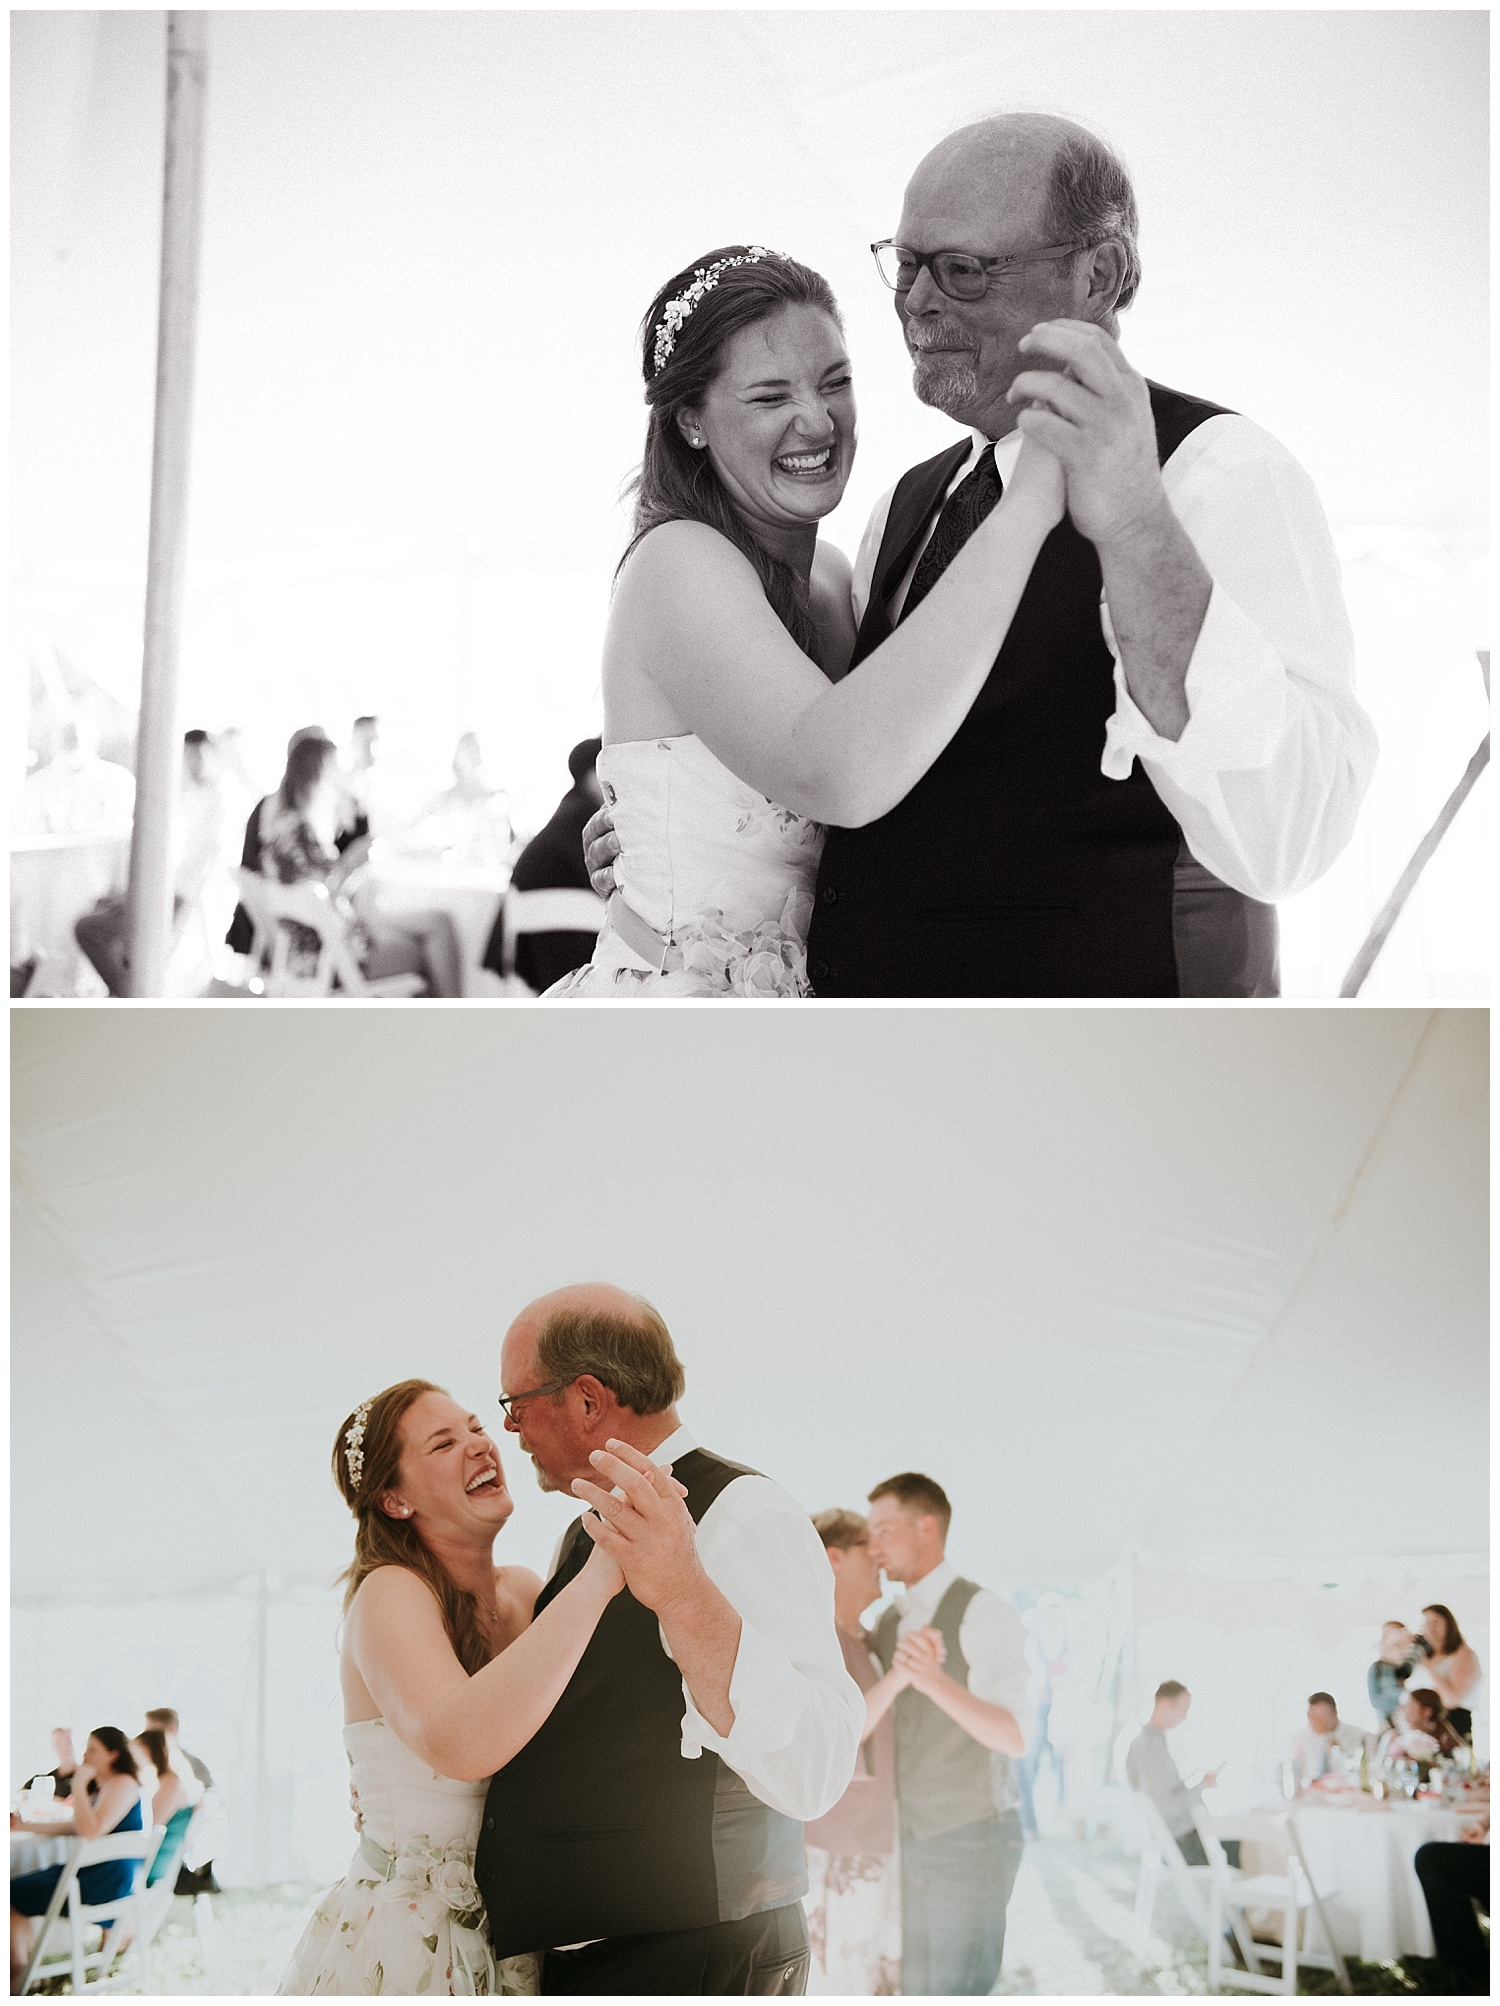 First Dance at Relaxed Frontyard Wedding in Trenton, Ontario   Holly McMurter Photographs